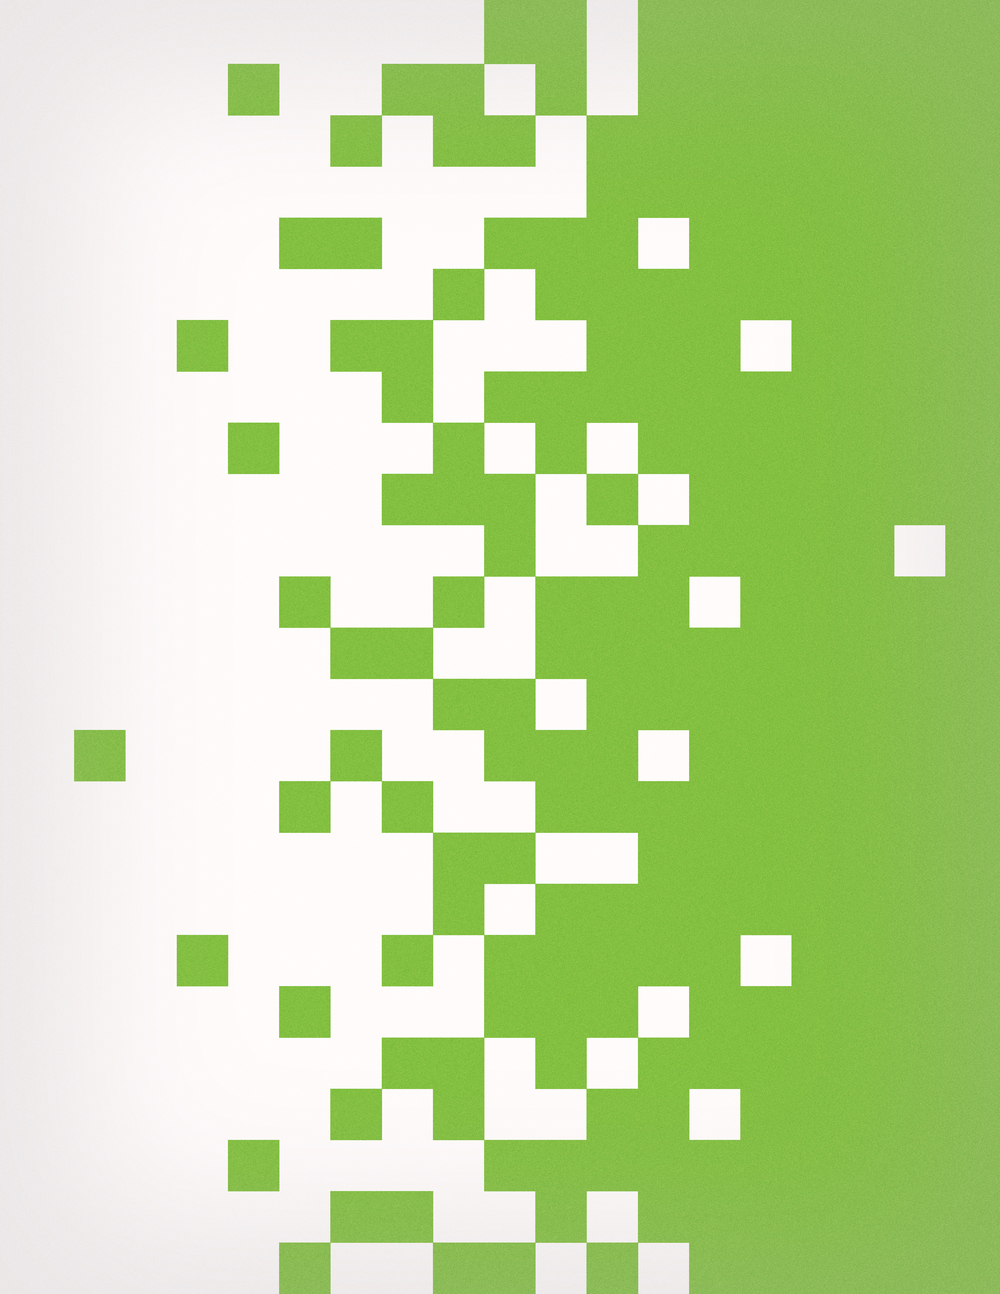 120929_Pixels-green-gradient.jpg